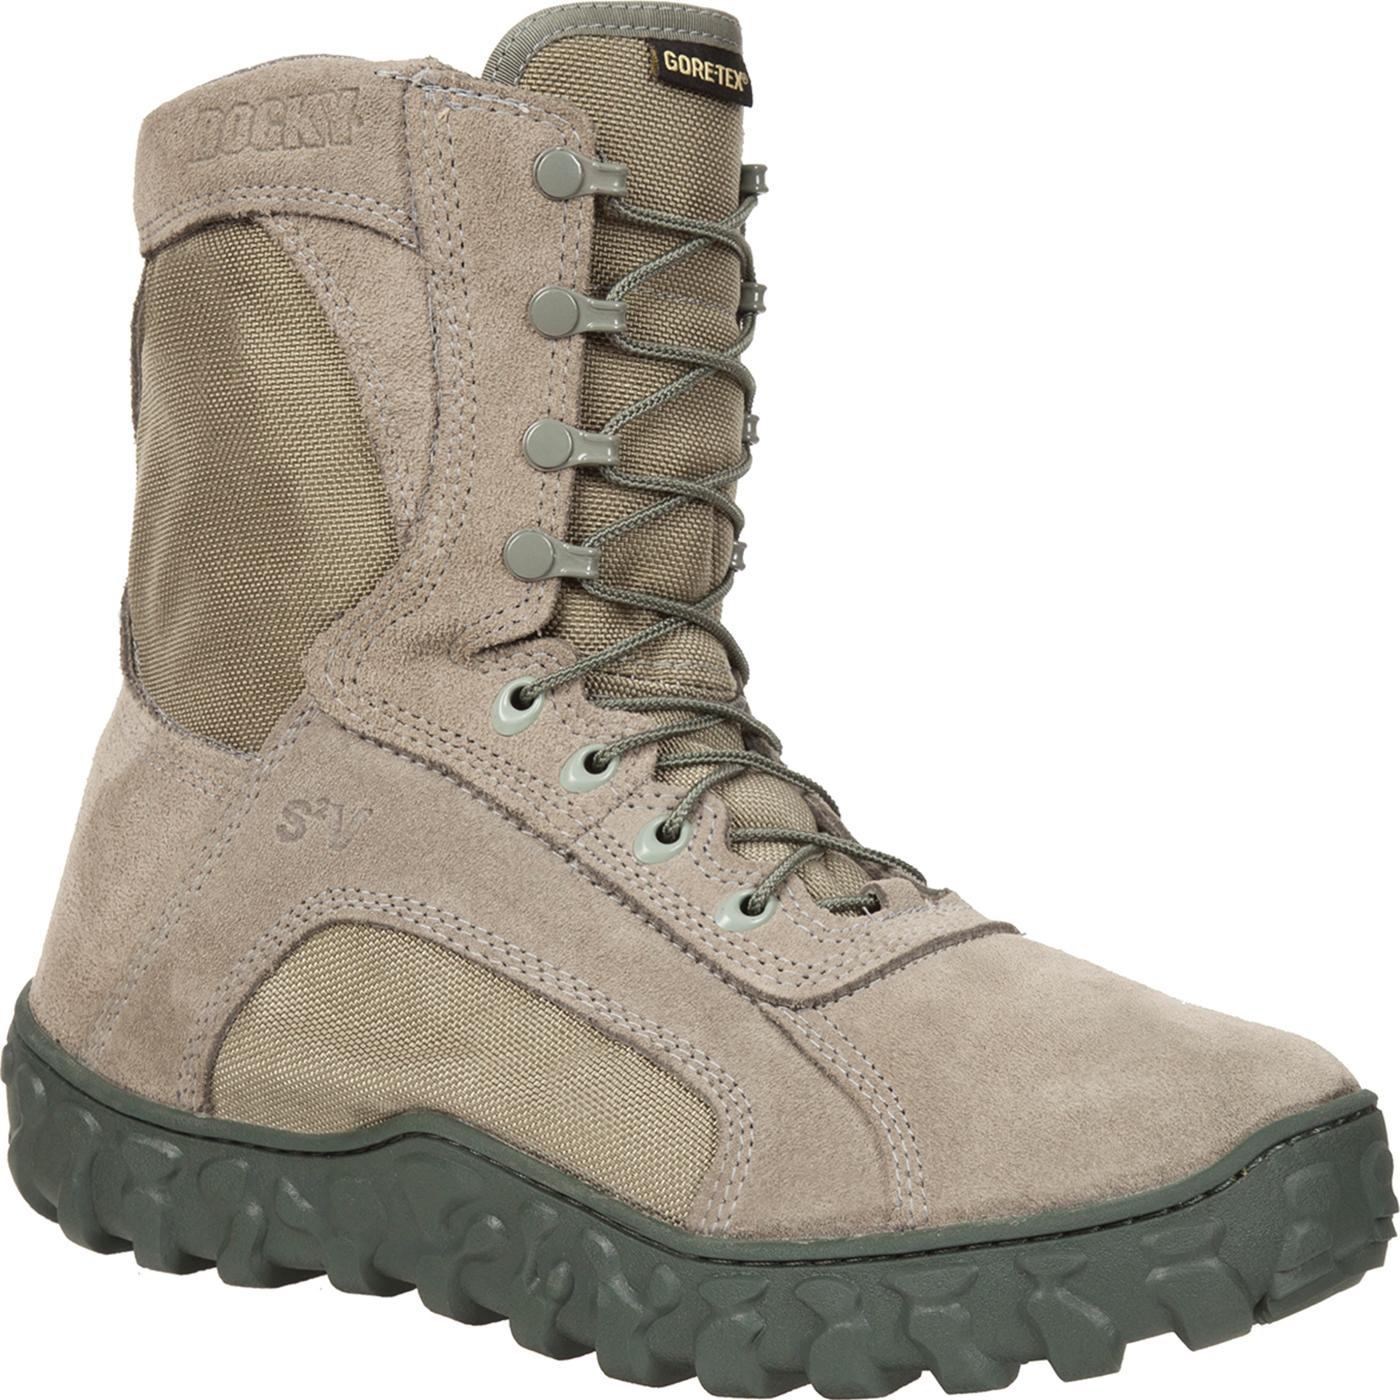 Rocky S2V GORE-TEX® Waterproof 400G Insulated Tactical Military Boot 5d2c28d54c65